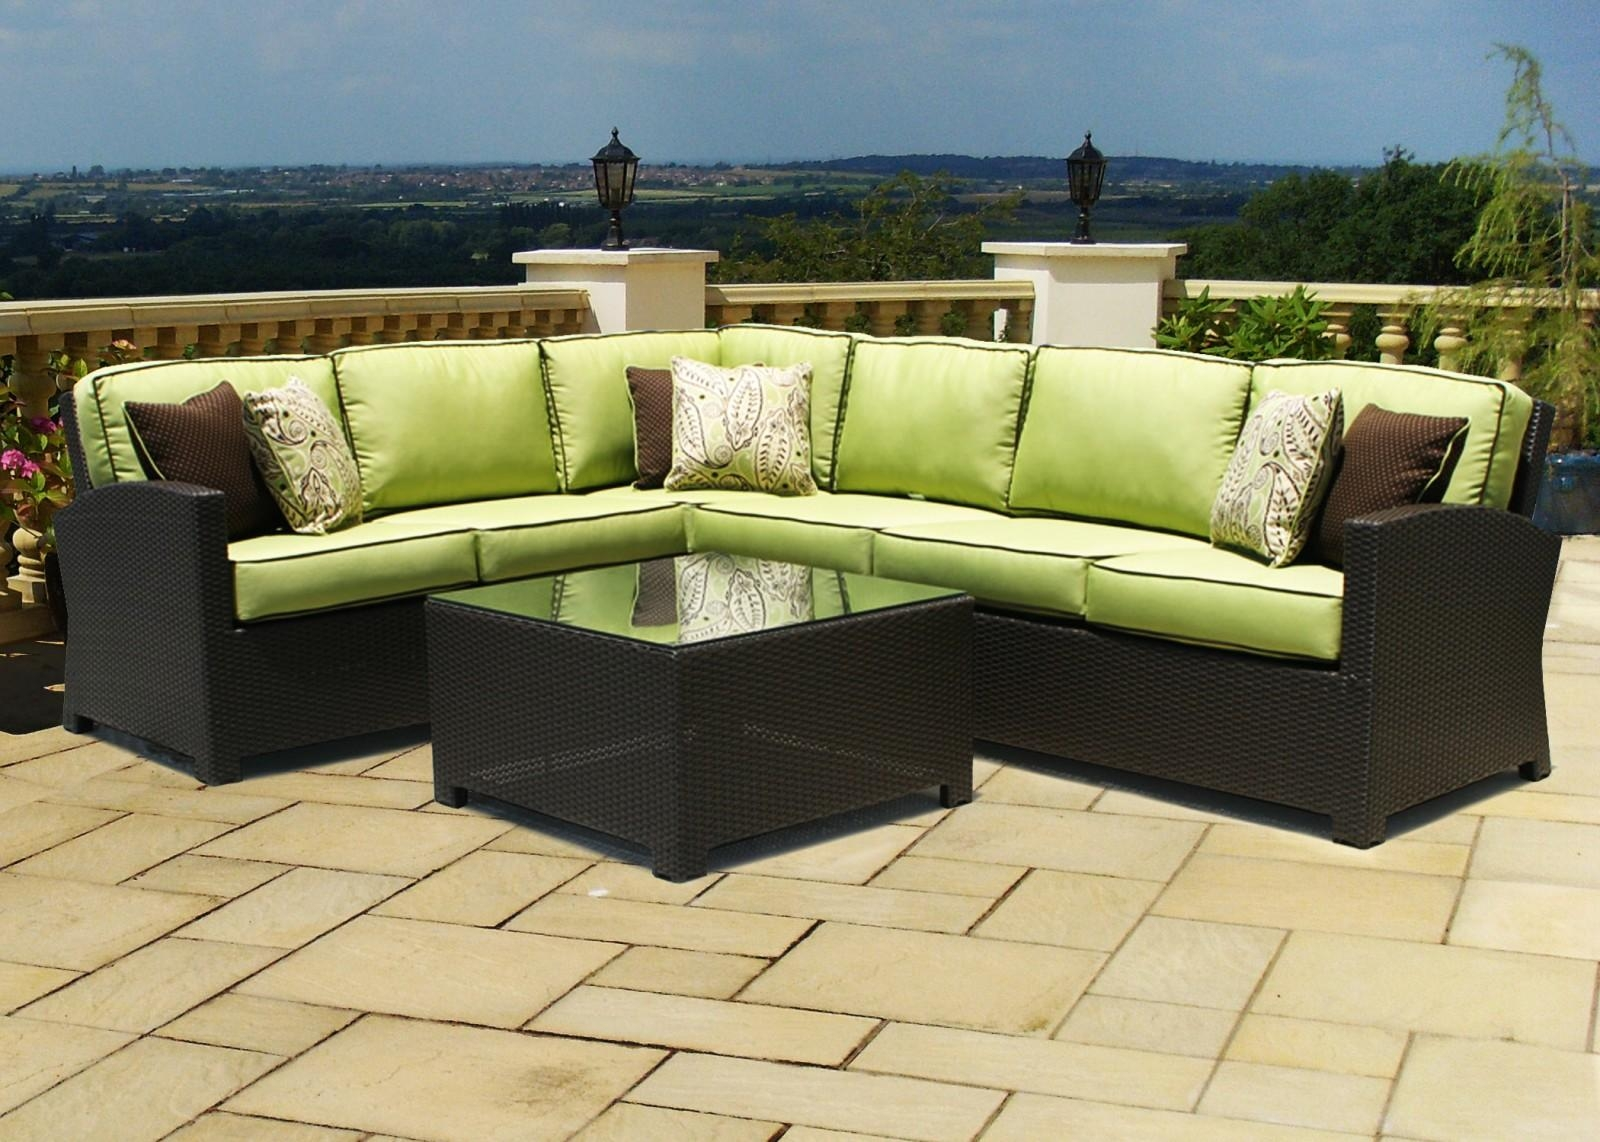 Sofas : Marvelous Outside Chair Cushions Rattan Furniture Cushions Throughout Cheap Patio Sofas (Image 20 of 22)